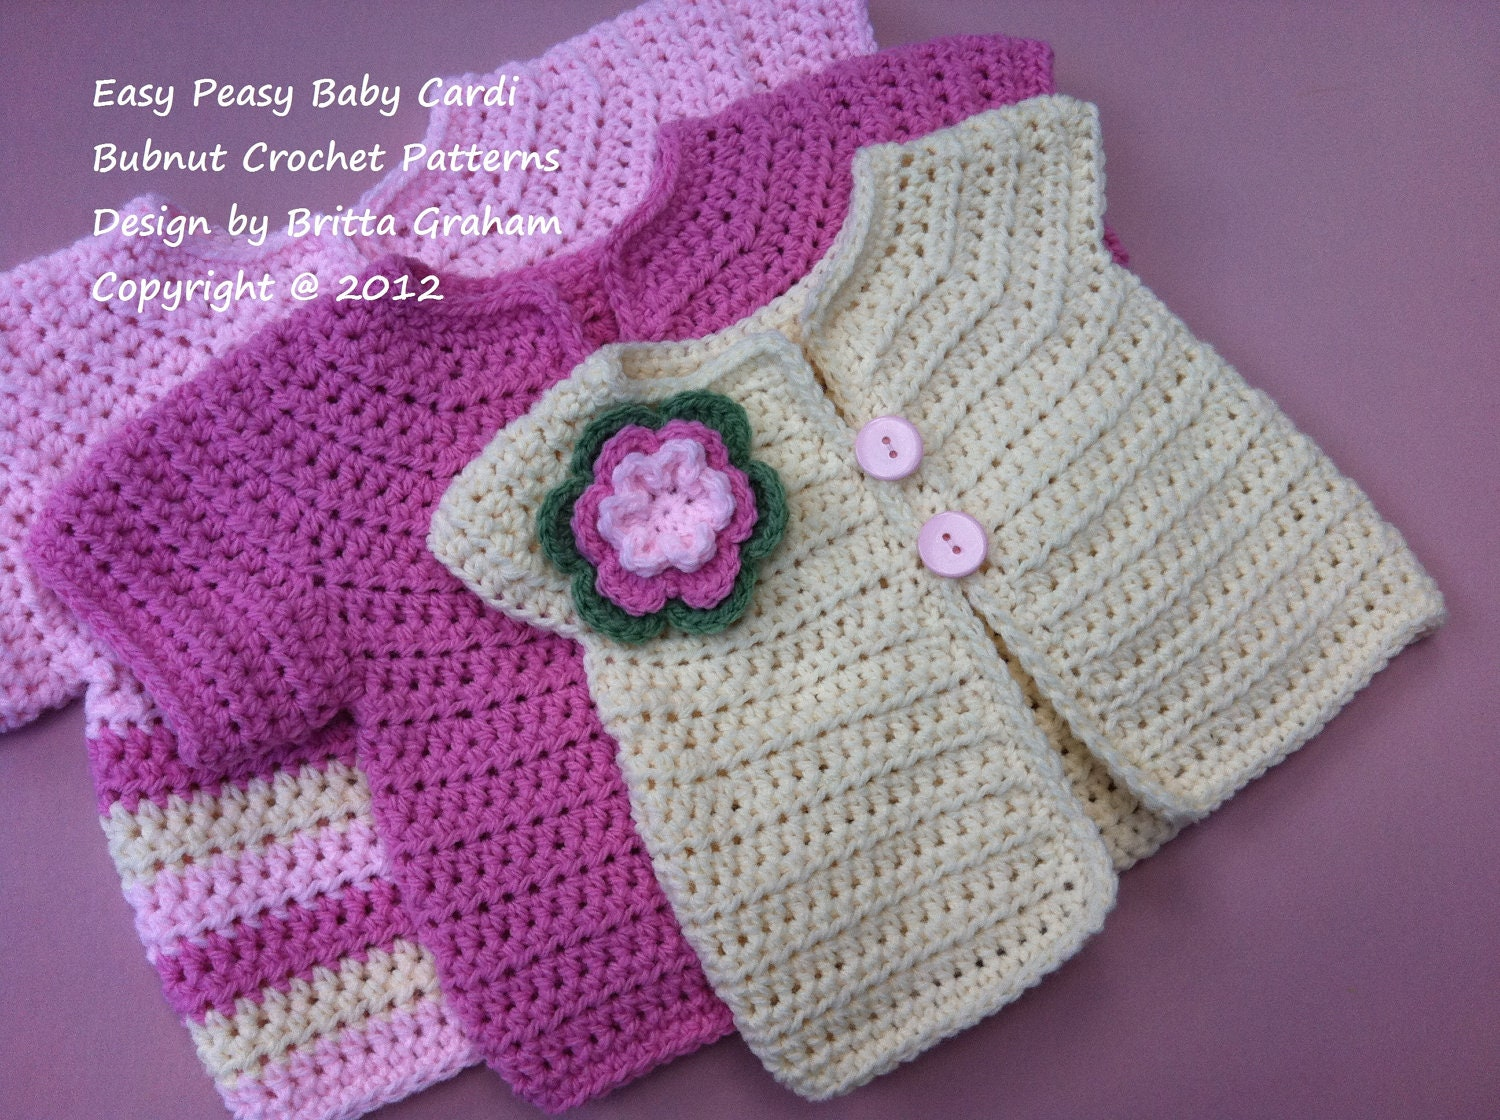 Crochet baby jacket pattern easy peasy cardigan crochet zoom bankloansurffo Choice Image